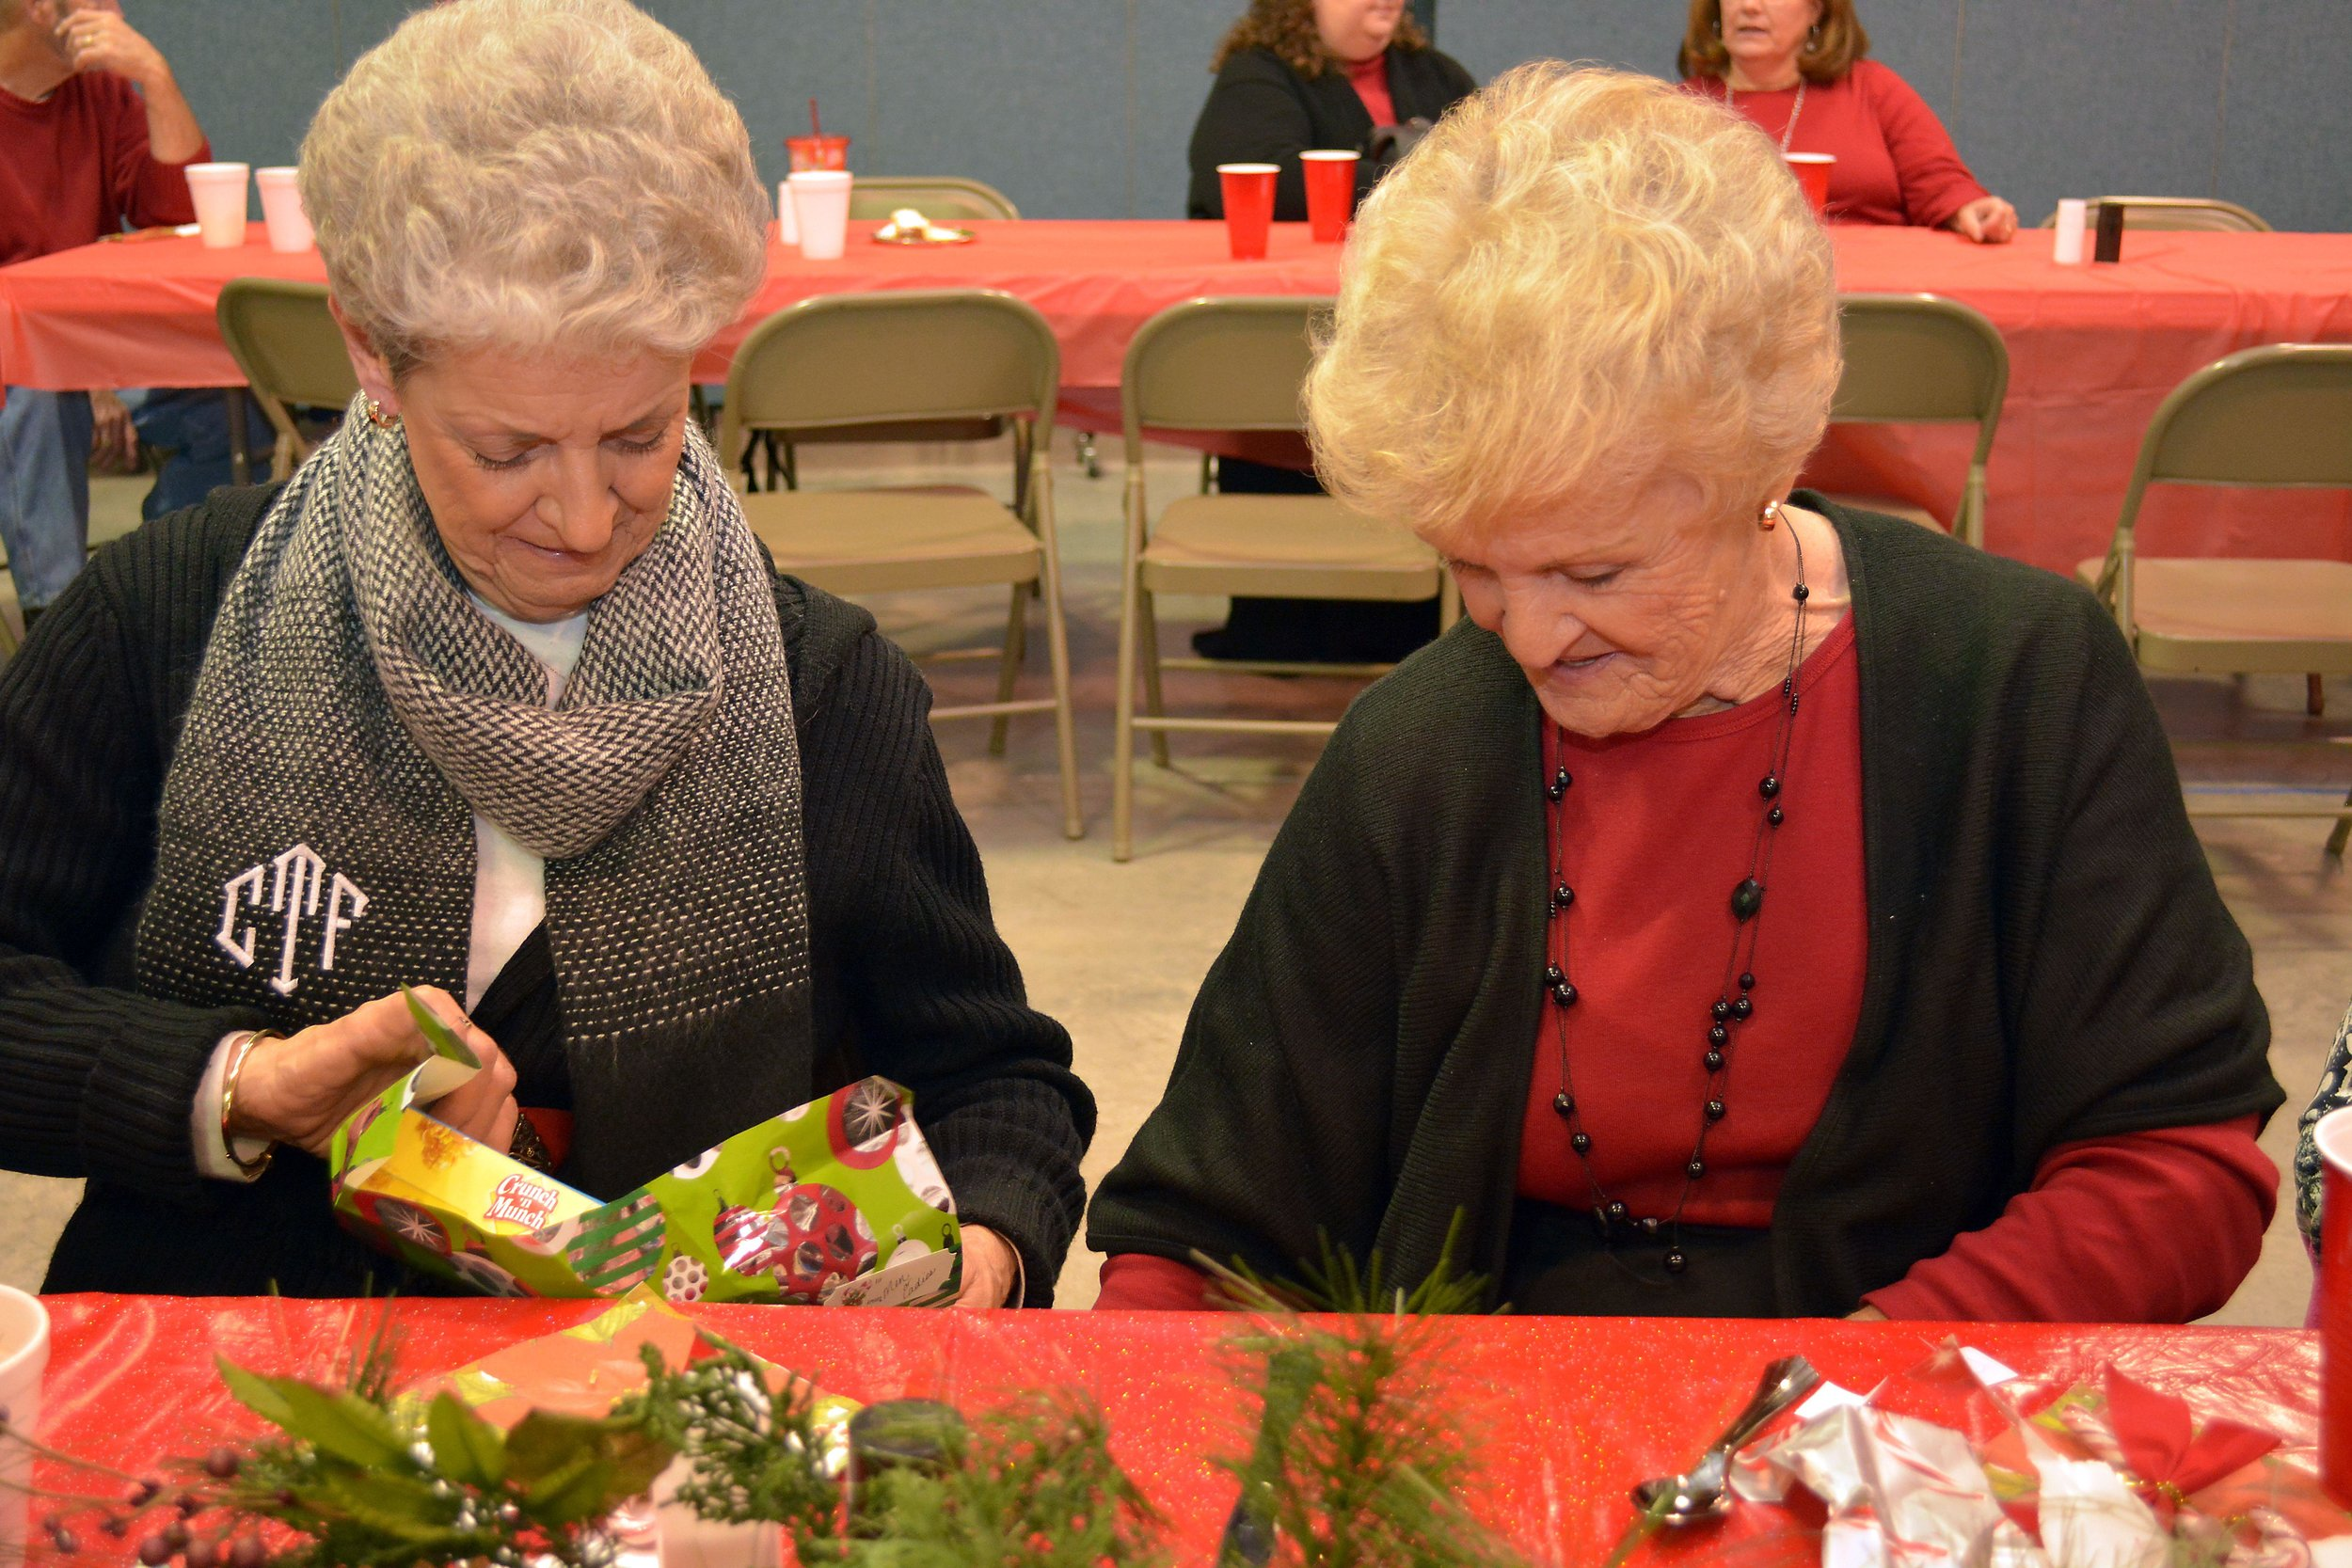 [tbclenoir.net]_1a60_senior saint, teen christmas, our christmas 2015 019.jpeg